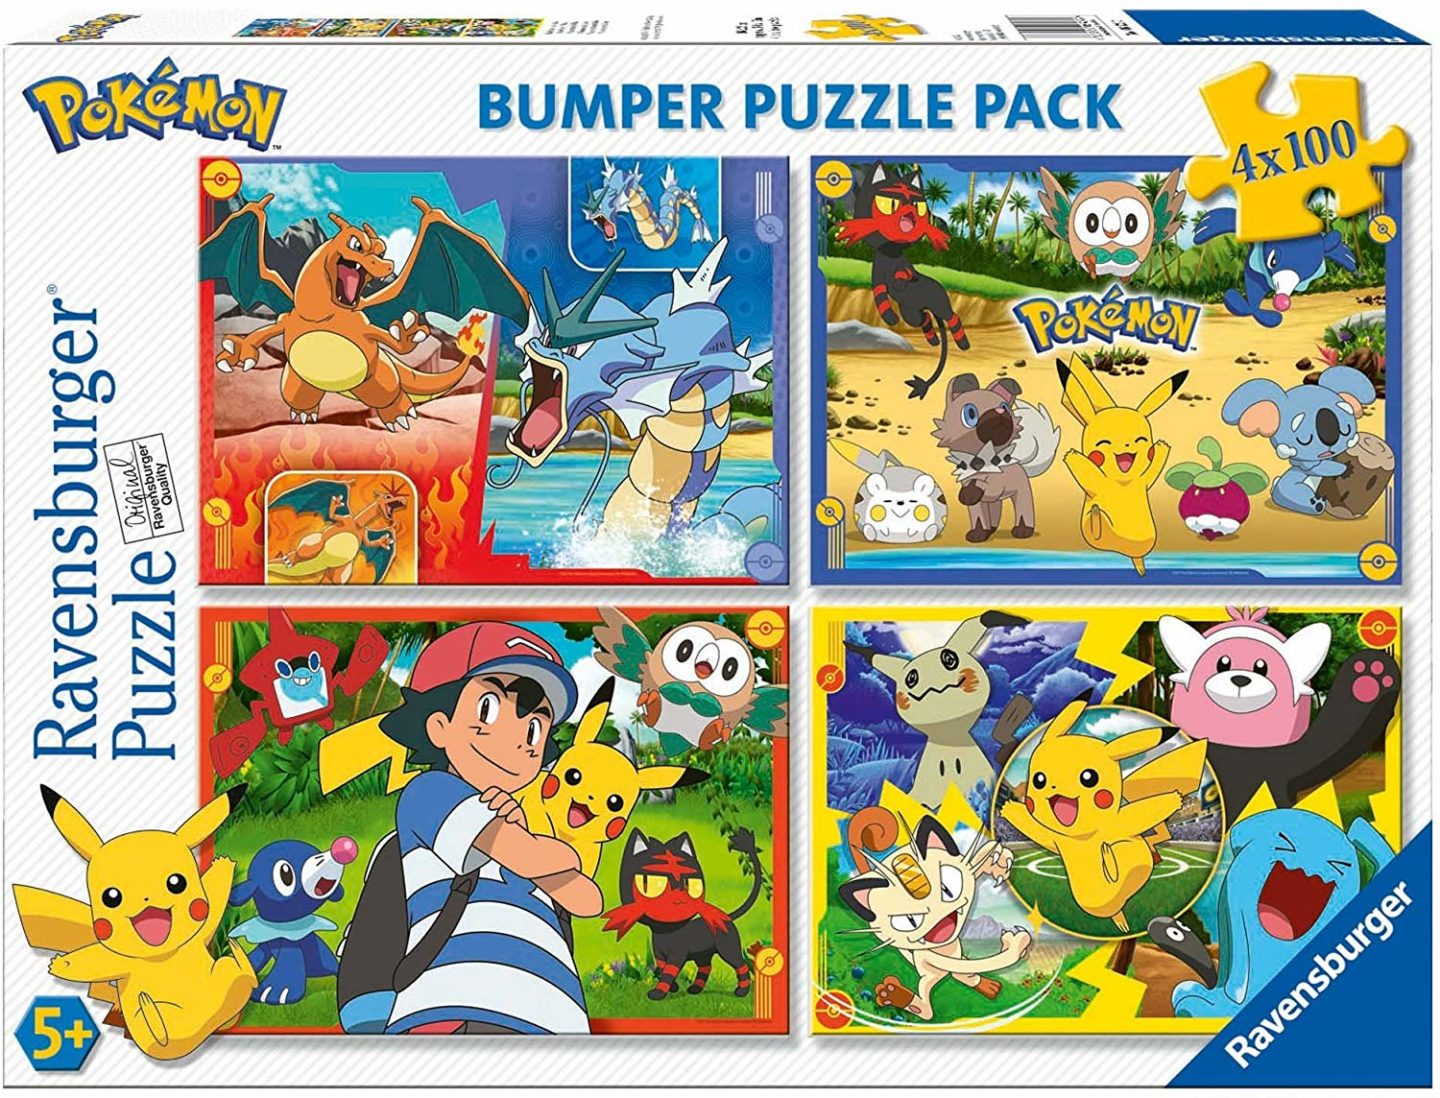 10 Pokemon gifts for kids you can buy on Amazon. Ravensburger bumper puzzle pack.